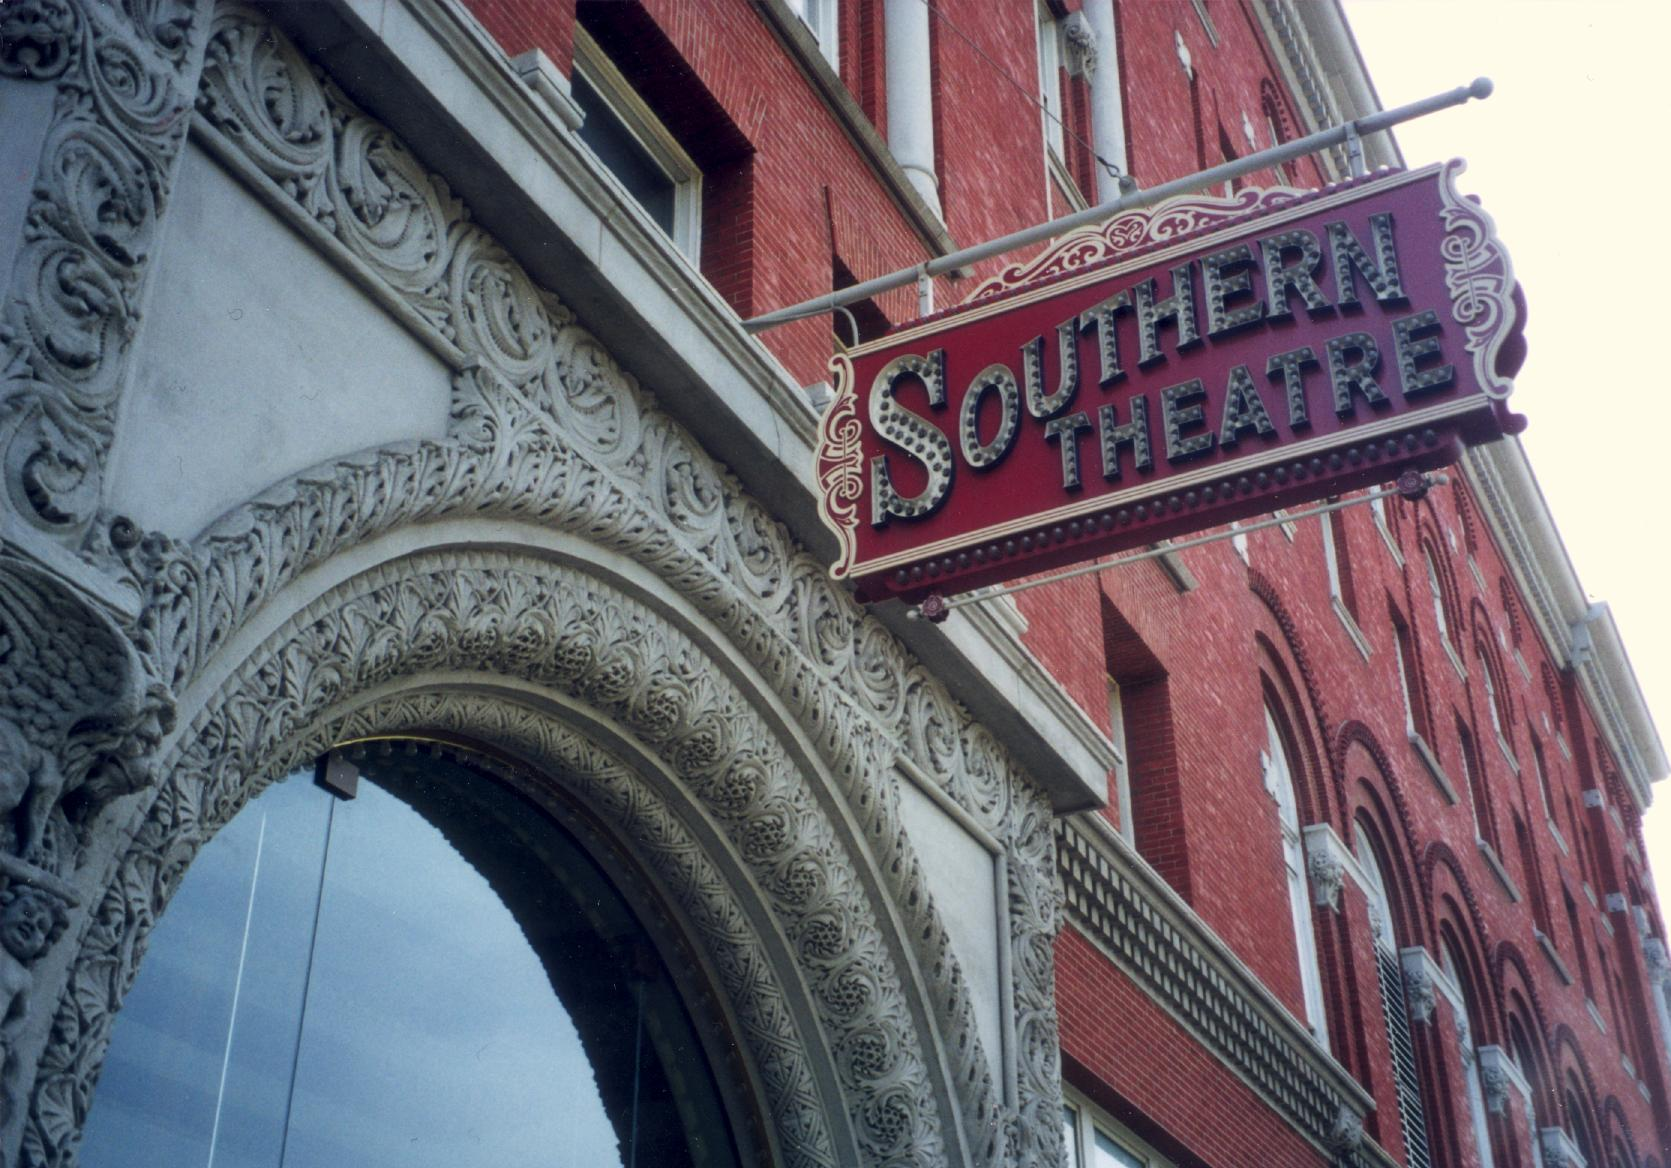 Tour the Southern Theatre